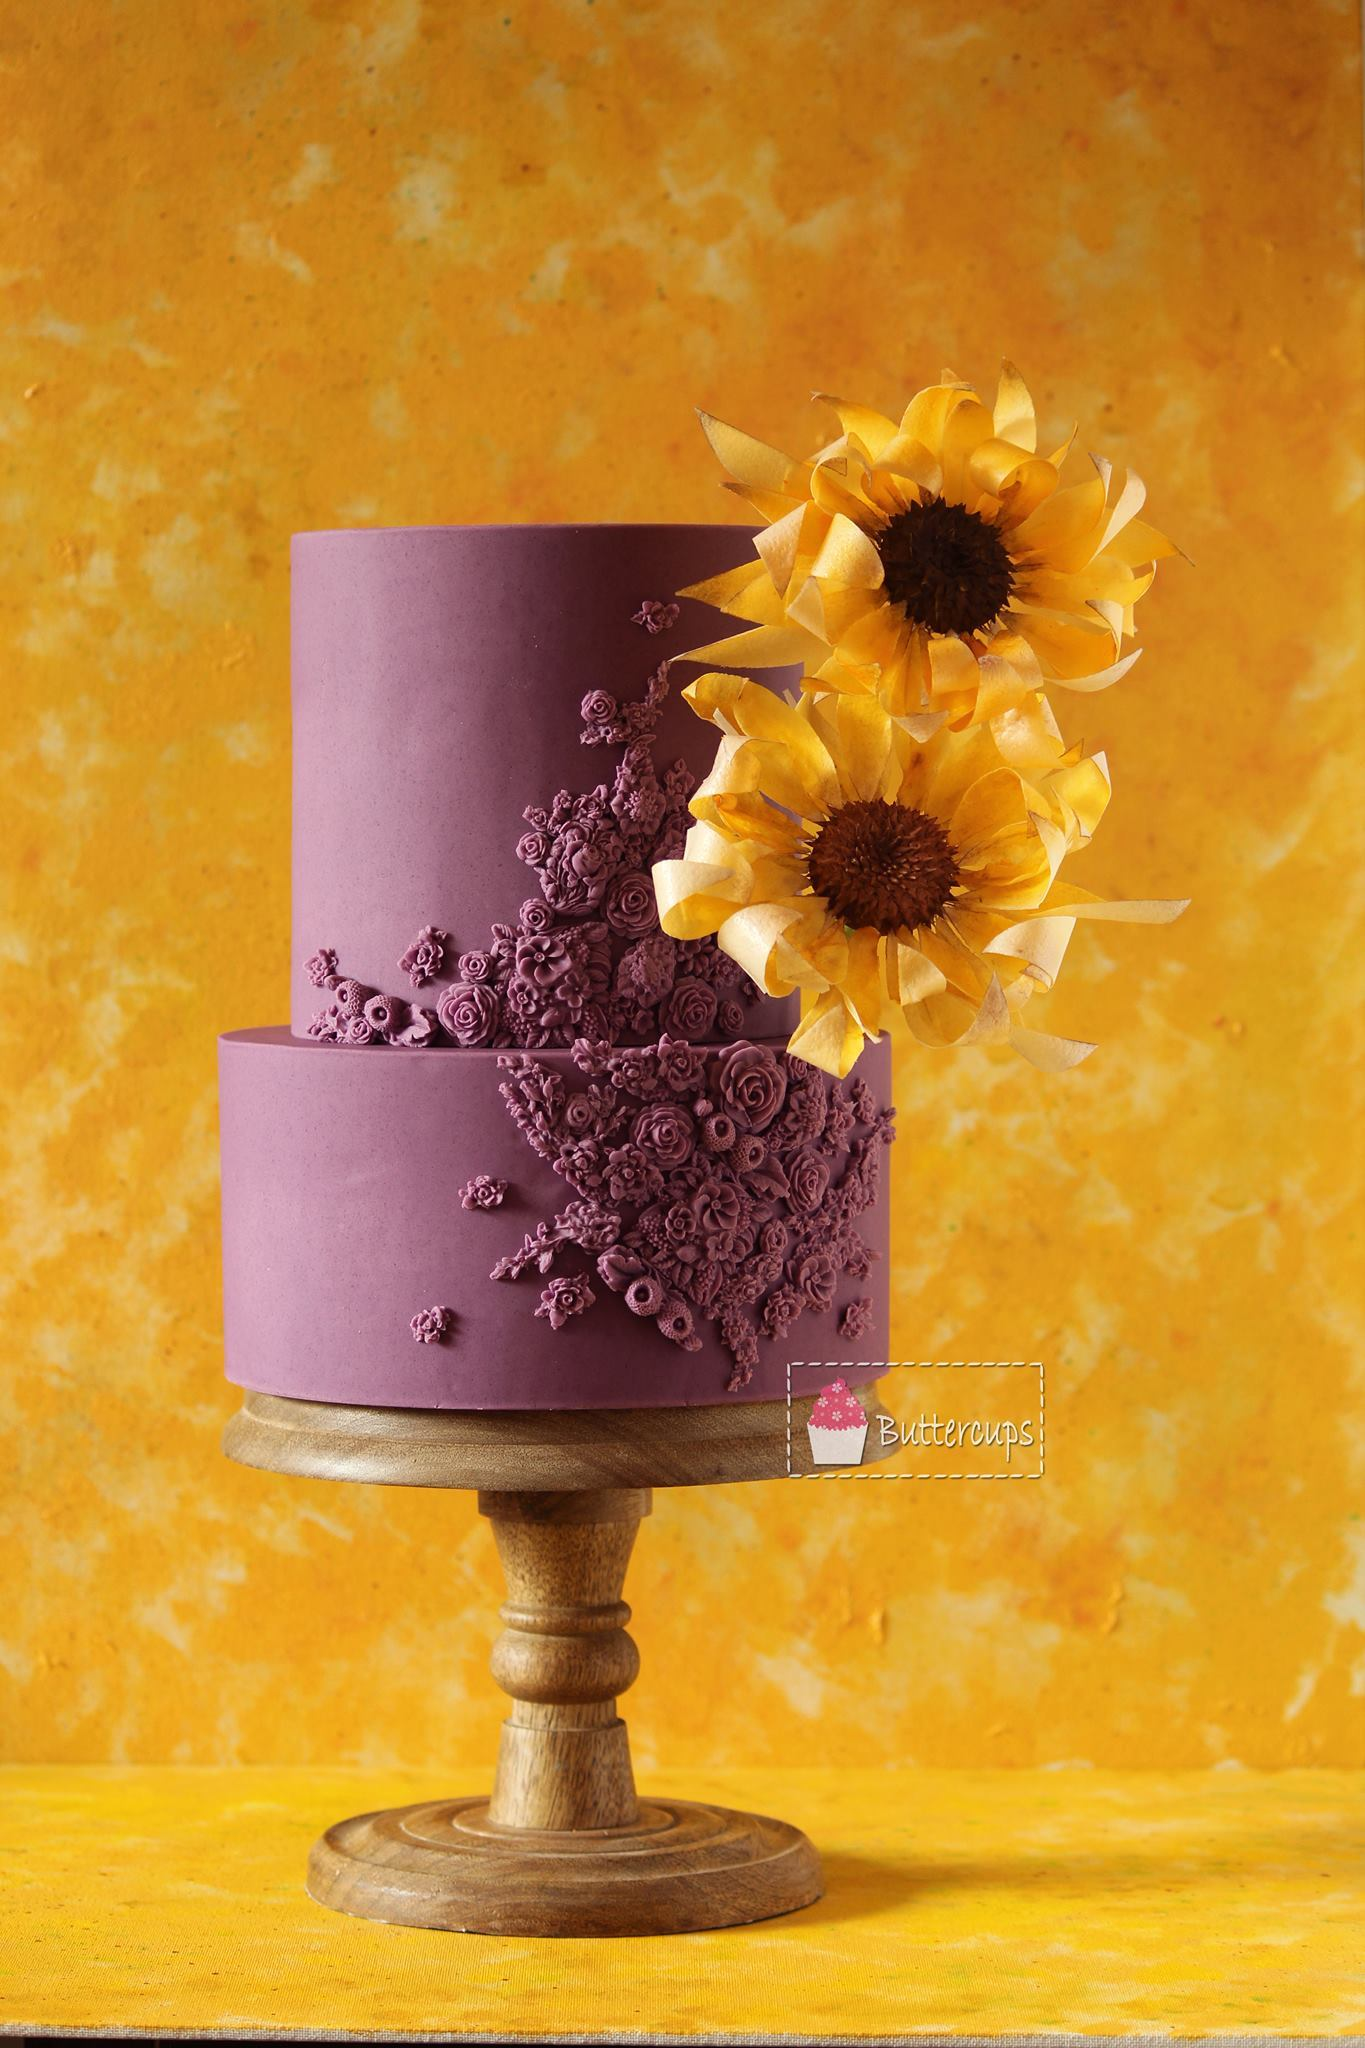 Burgundy fondant wedding cake with sunflower